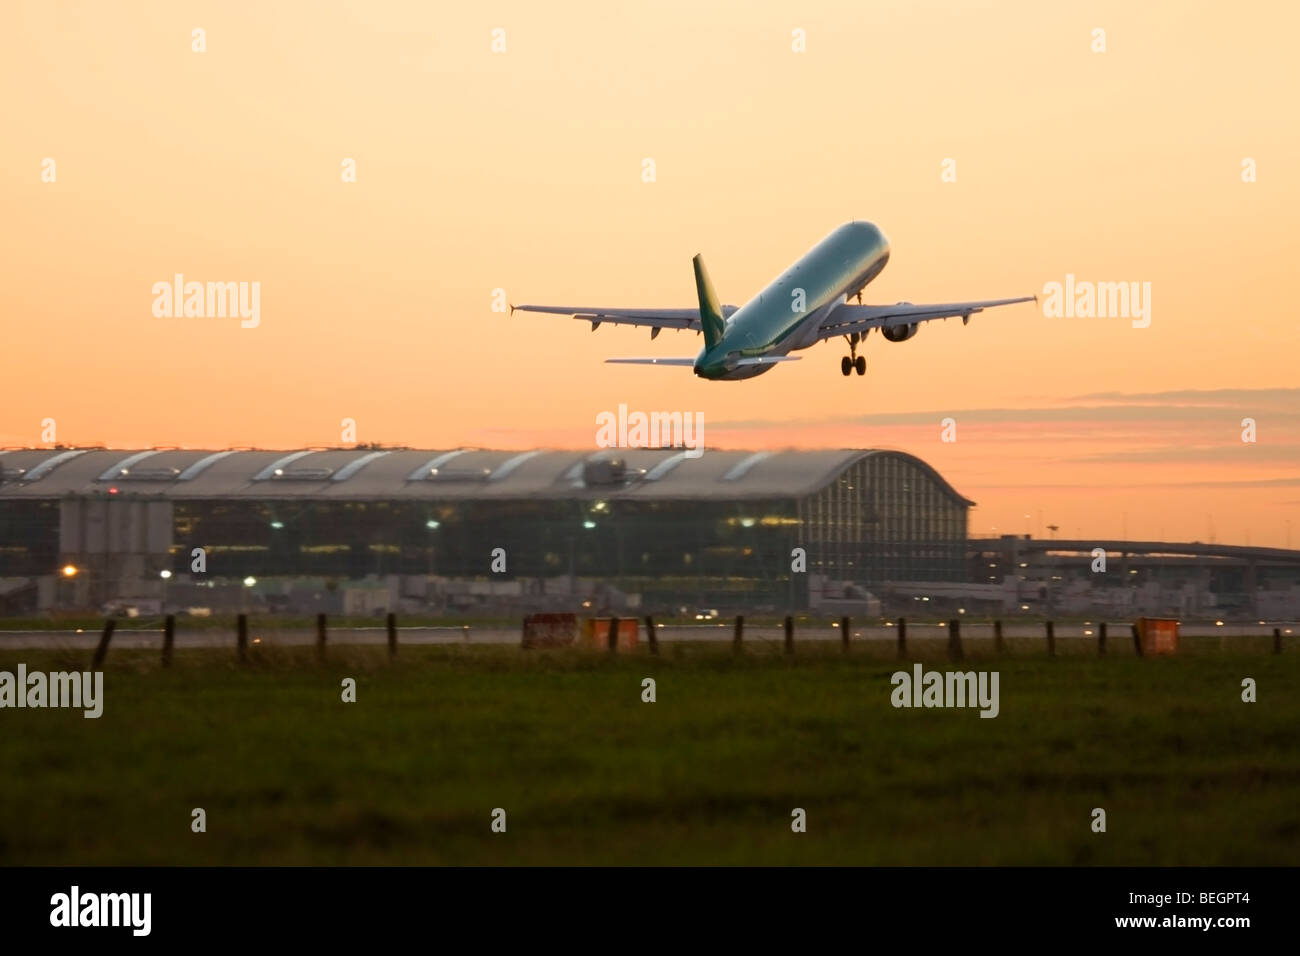 Commercial airplane taking off at London Heathrow Airport with Terminal 5 in the background, UK Stock Photo